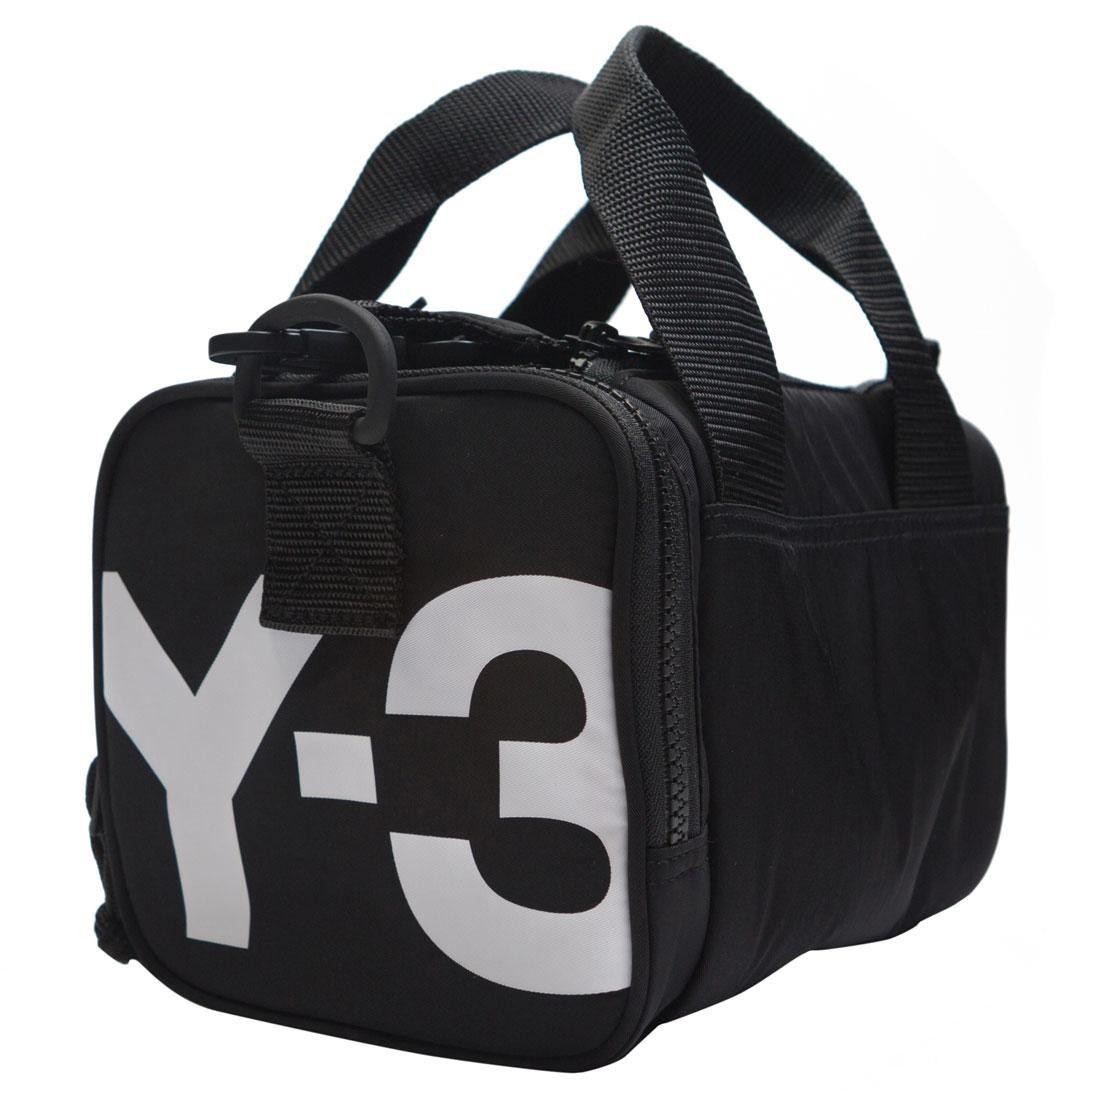 Adidas Y-3 Mini Bag (black)